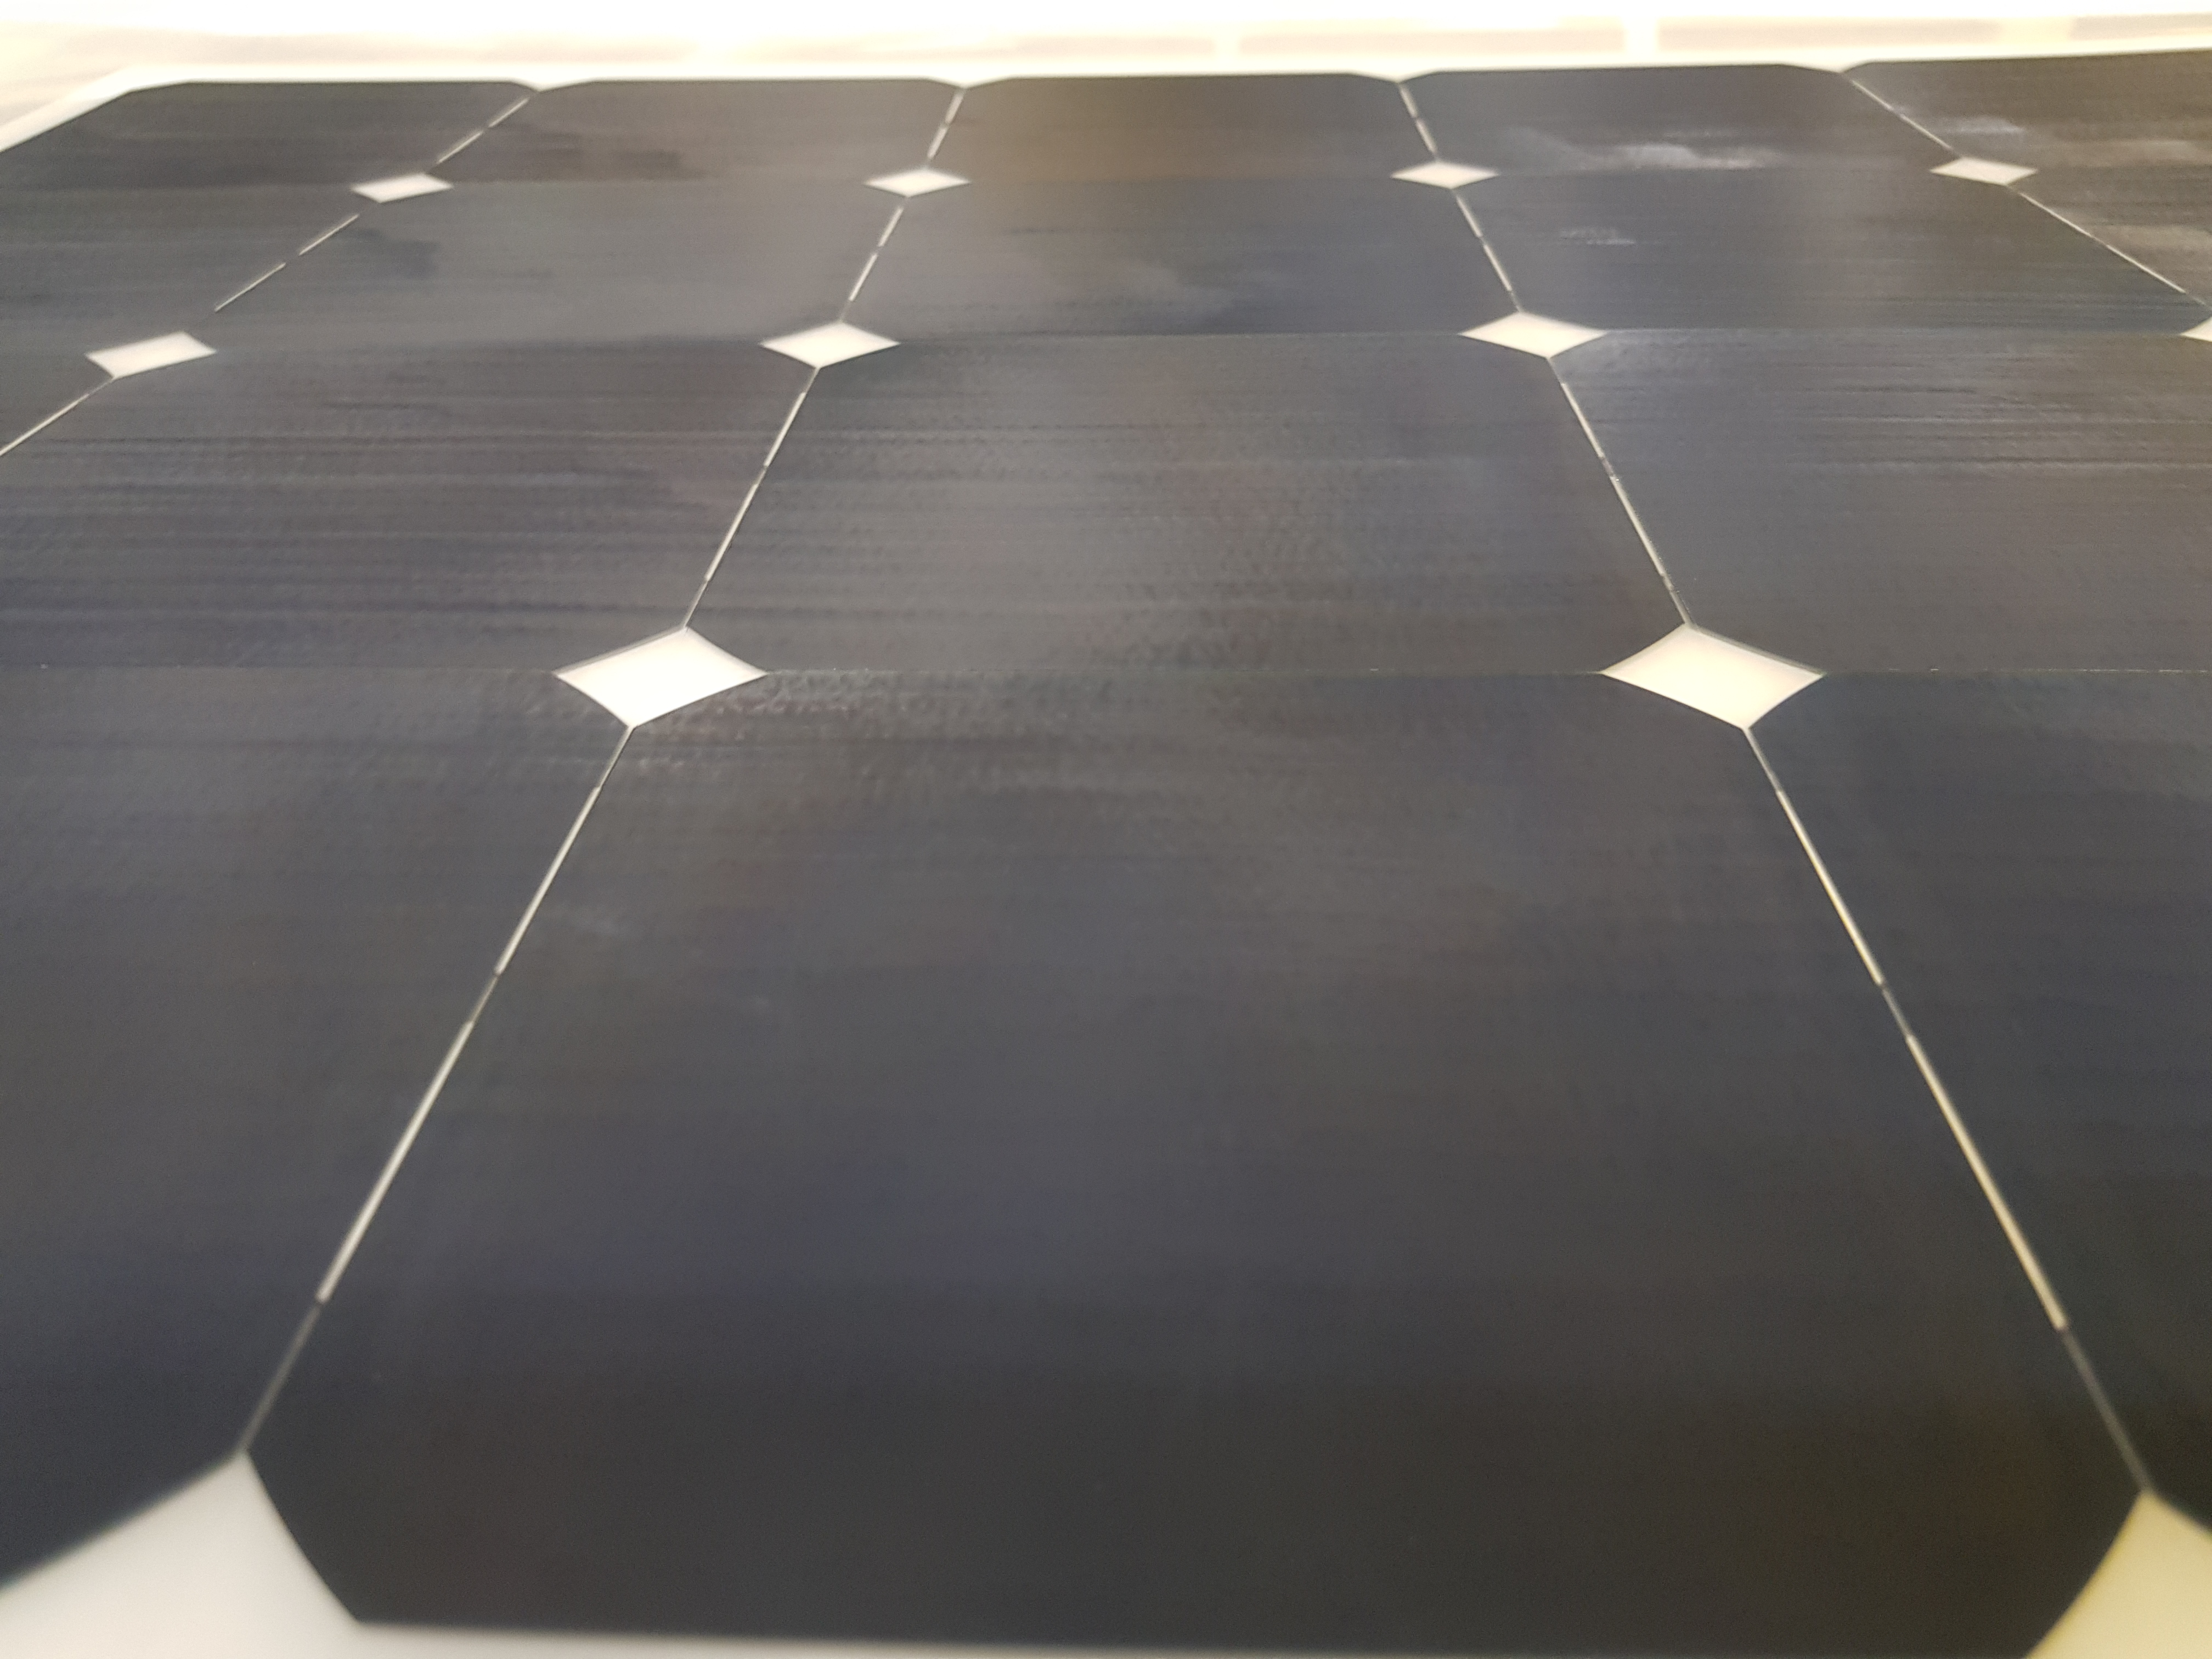 Close-up solar laminate AR